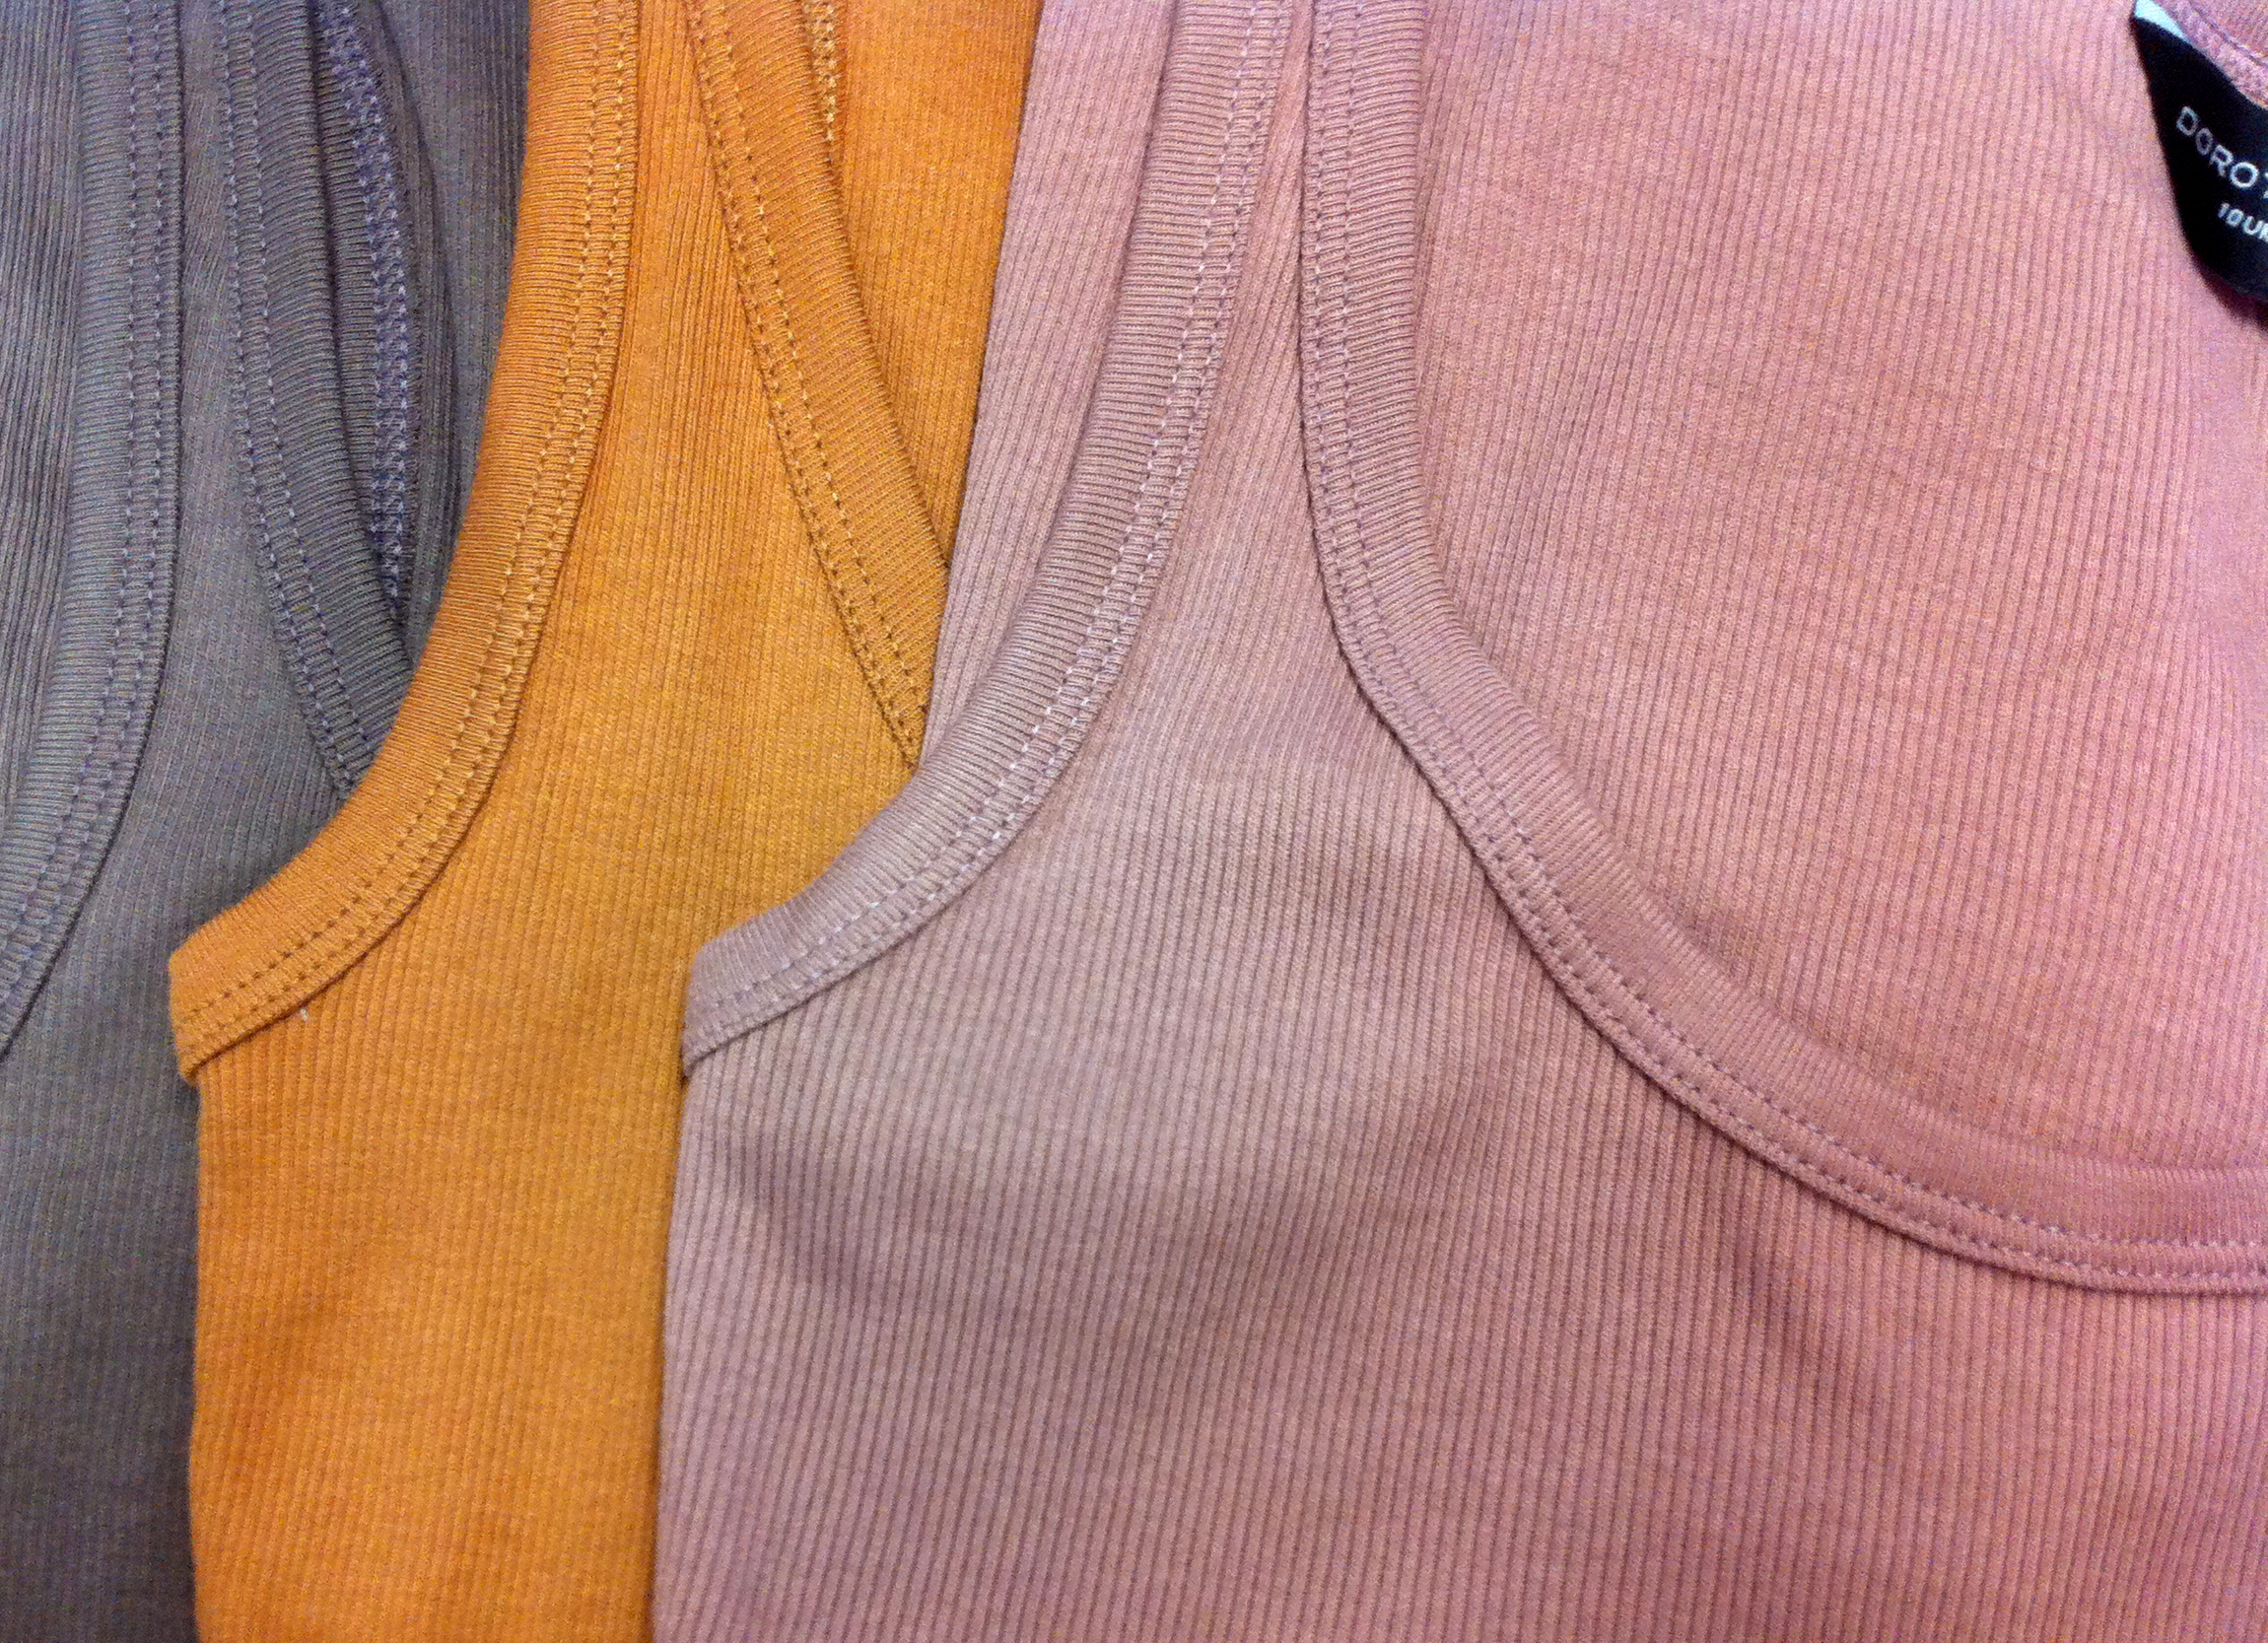 Three vest tops from Dorothy Perkins